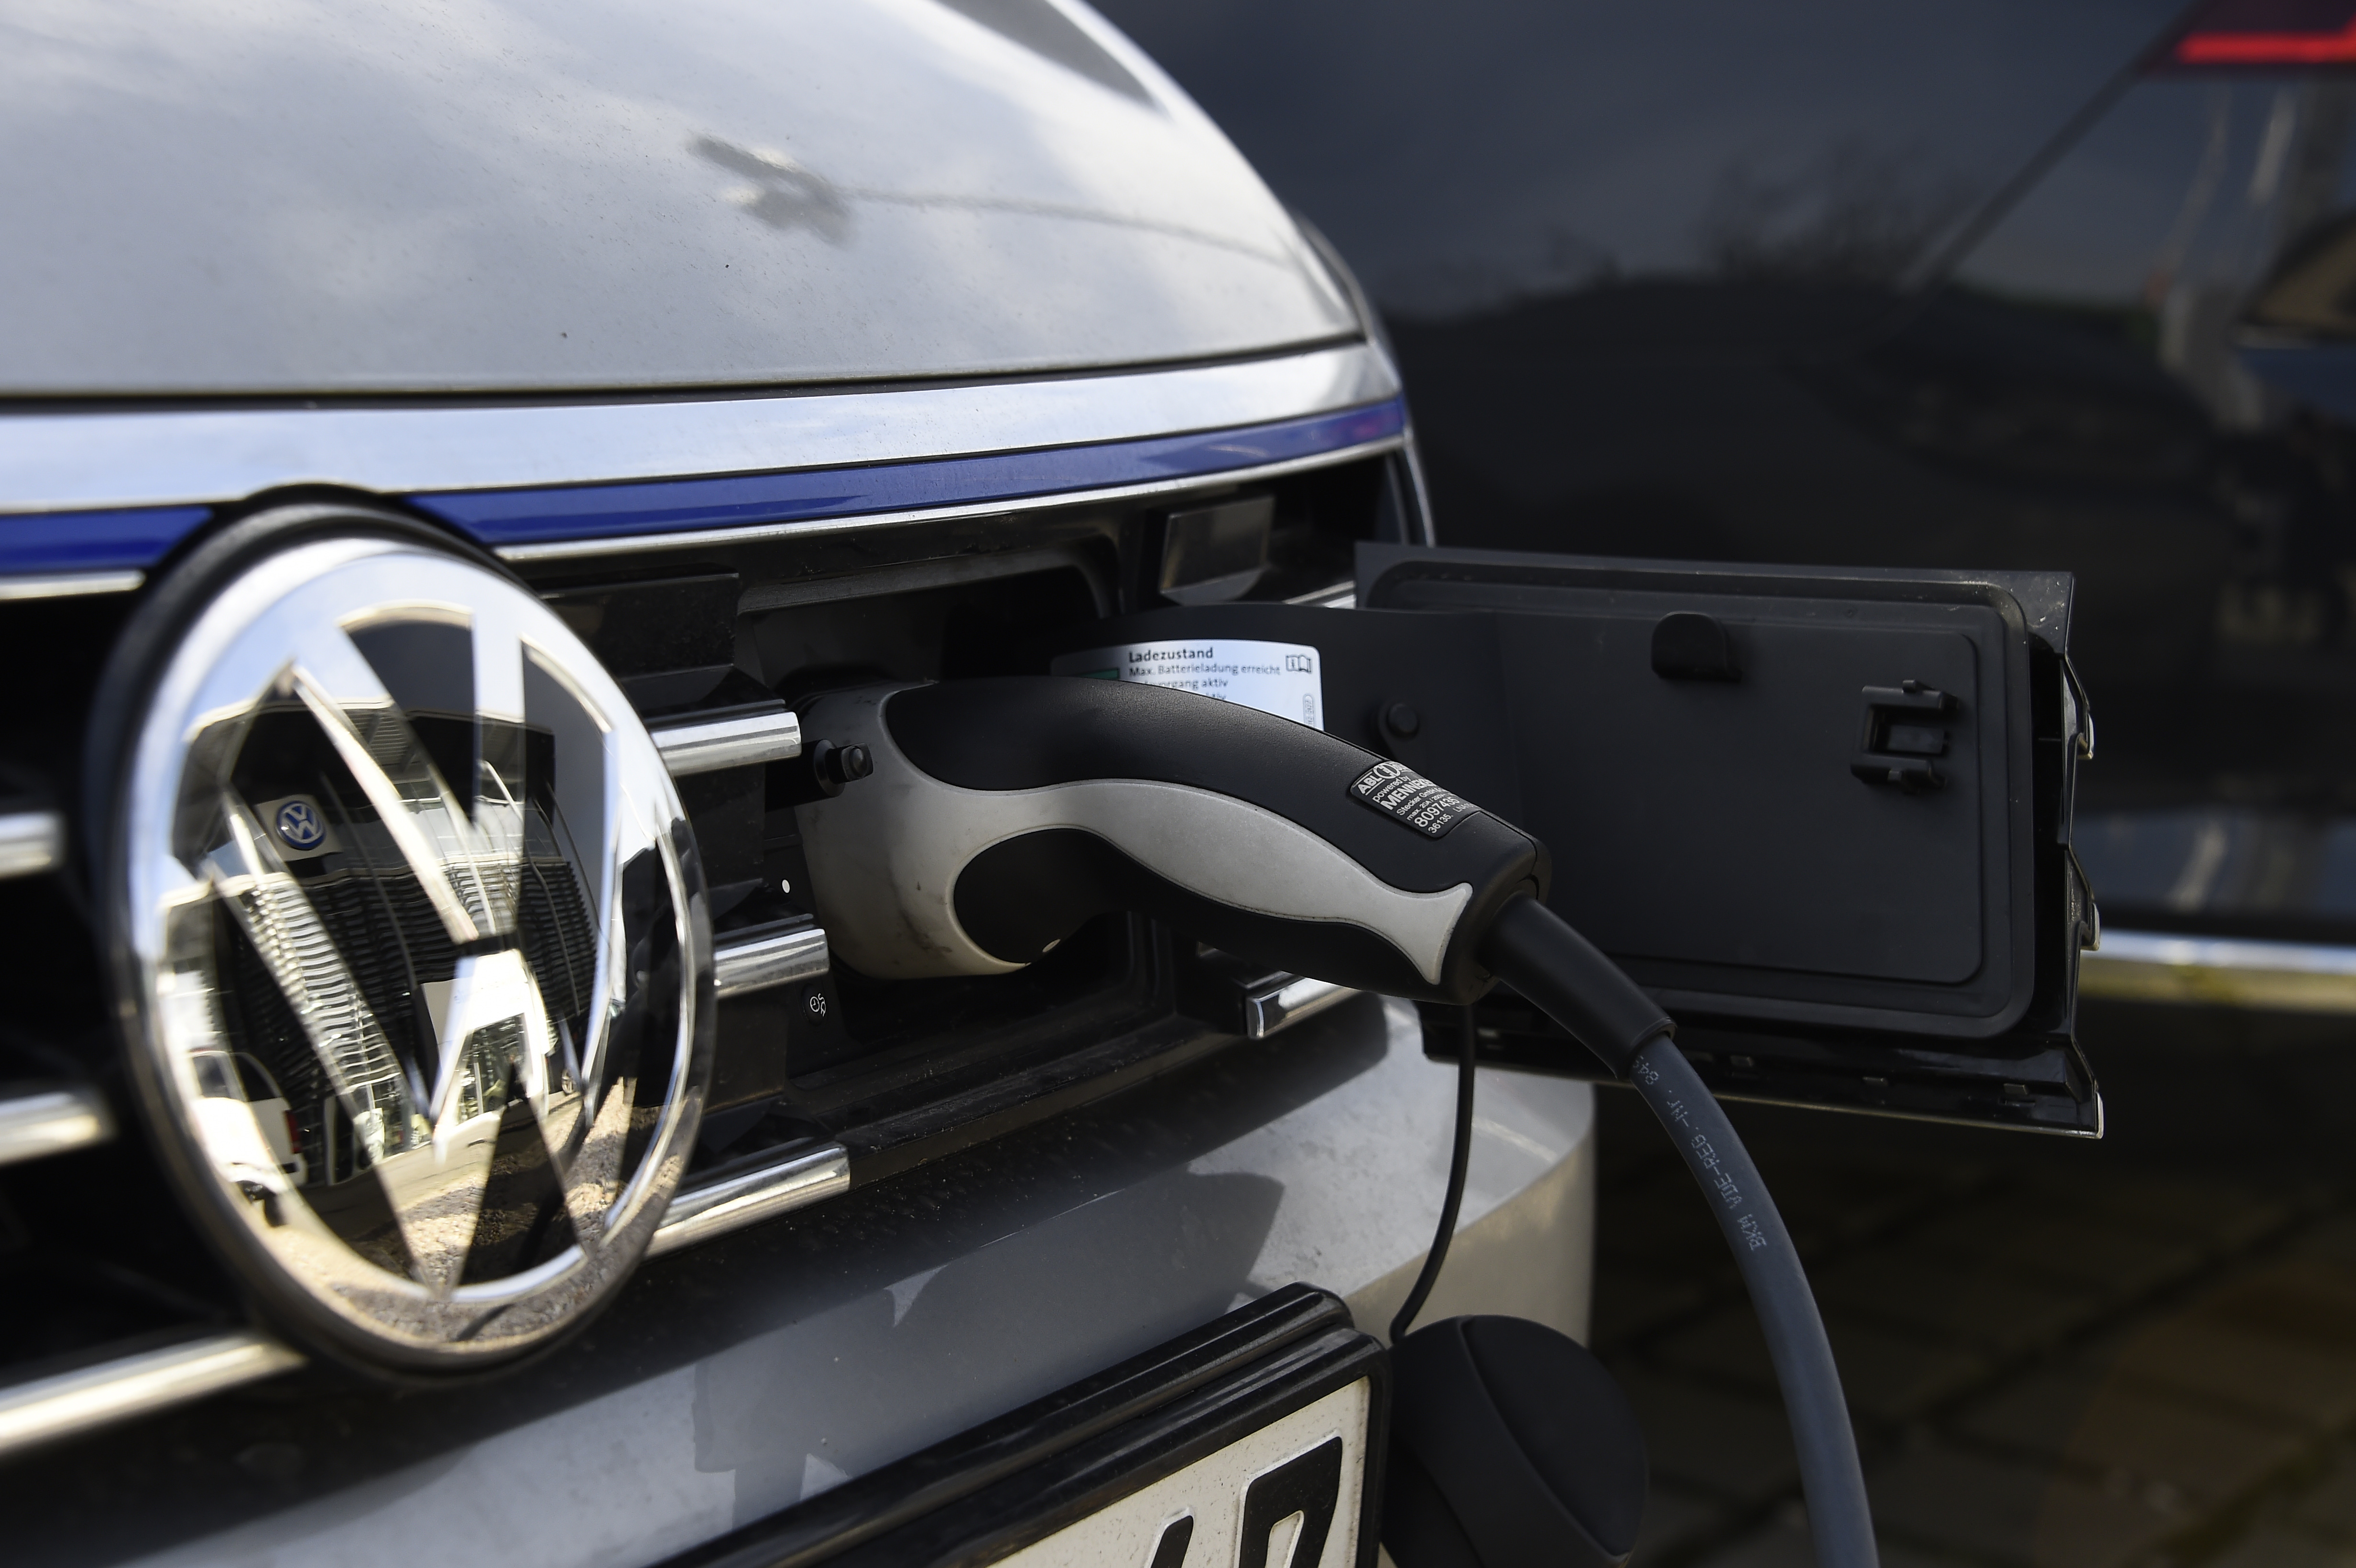 A VW electric car is plugged on a power station at a Service station in Berlin on February 2, 2016. / AFP PHOTO / TOBIAS SCHWARZ